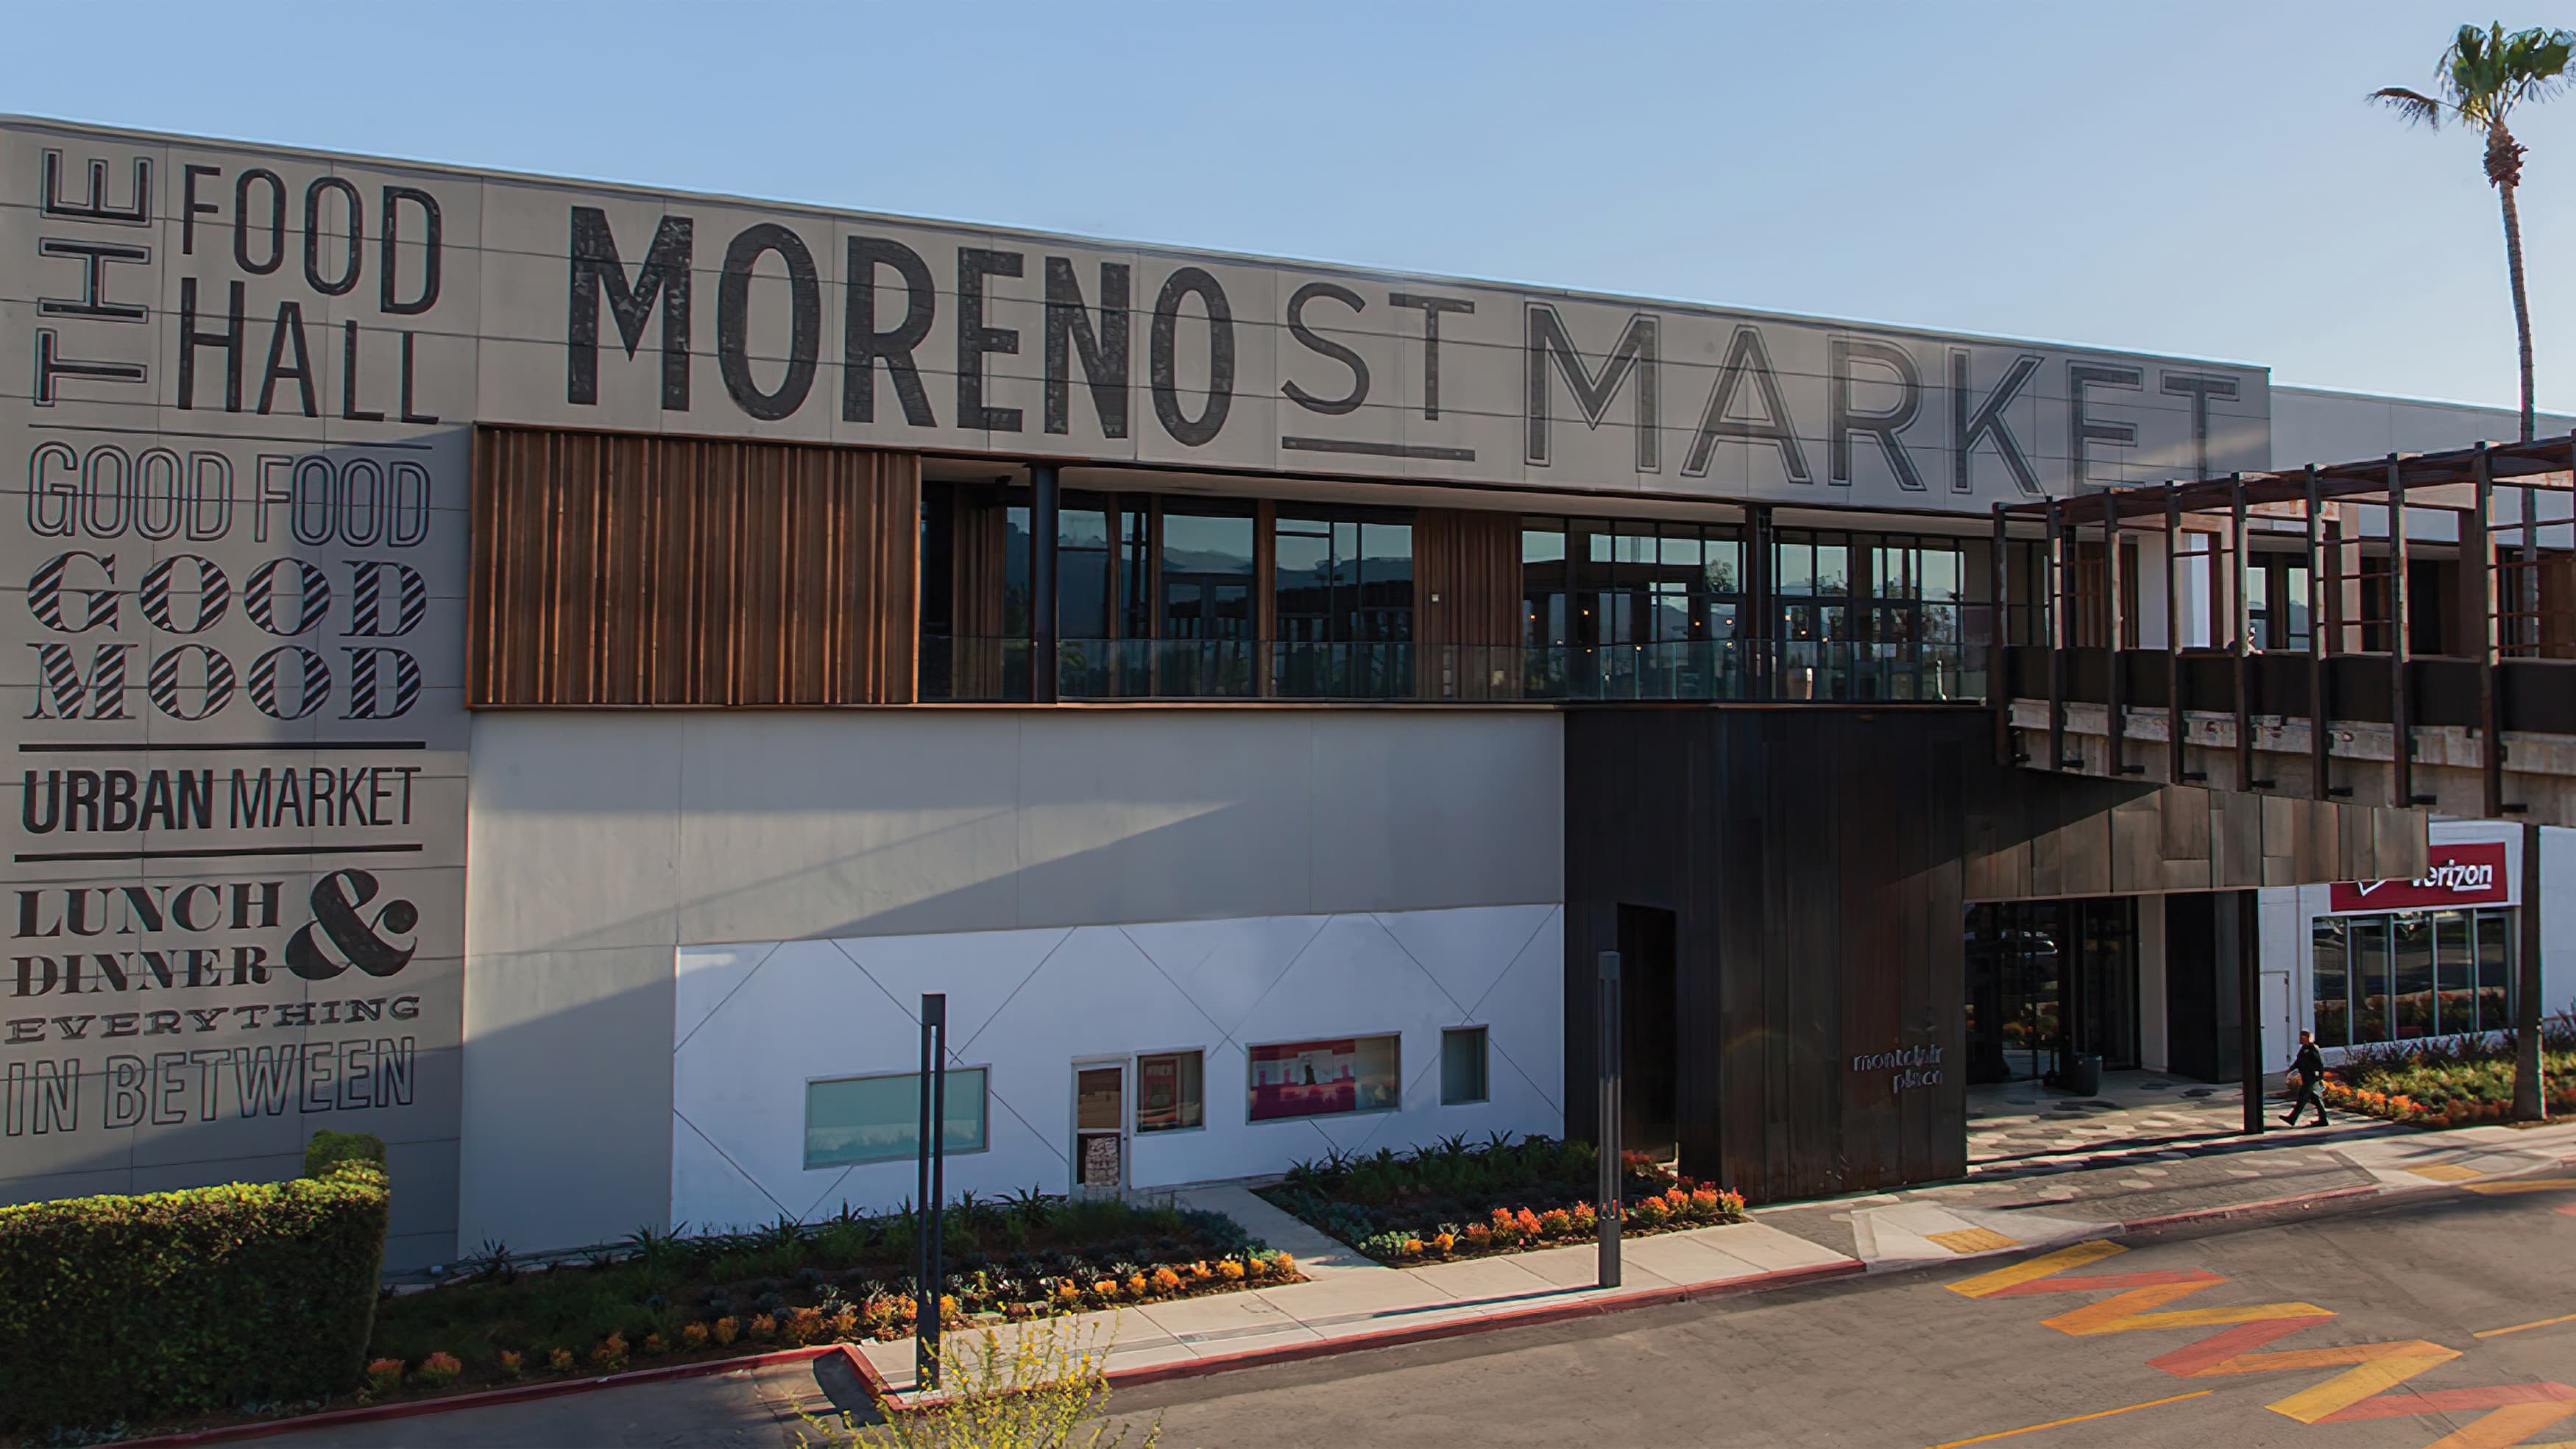 Moreno Street Market building with architectural graphics and specialty crosswalk